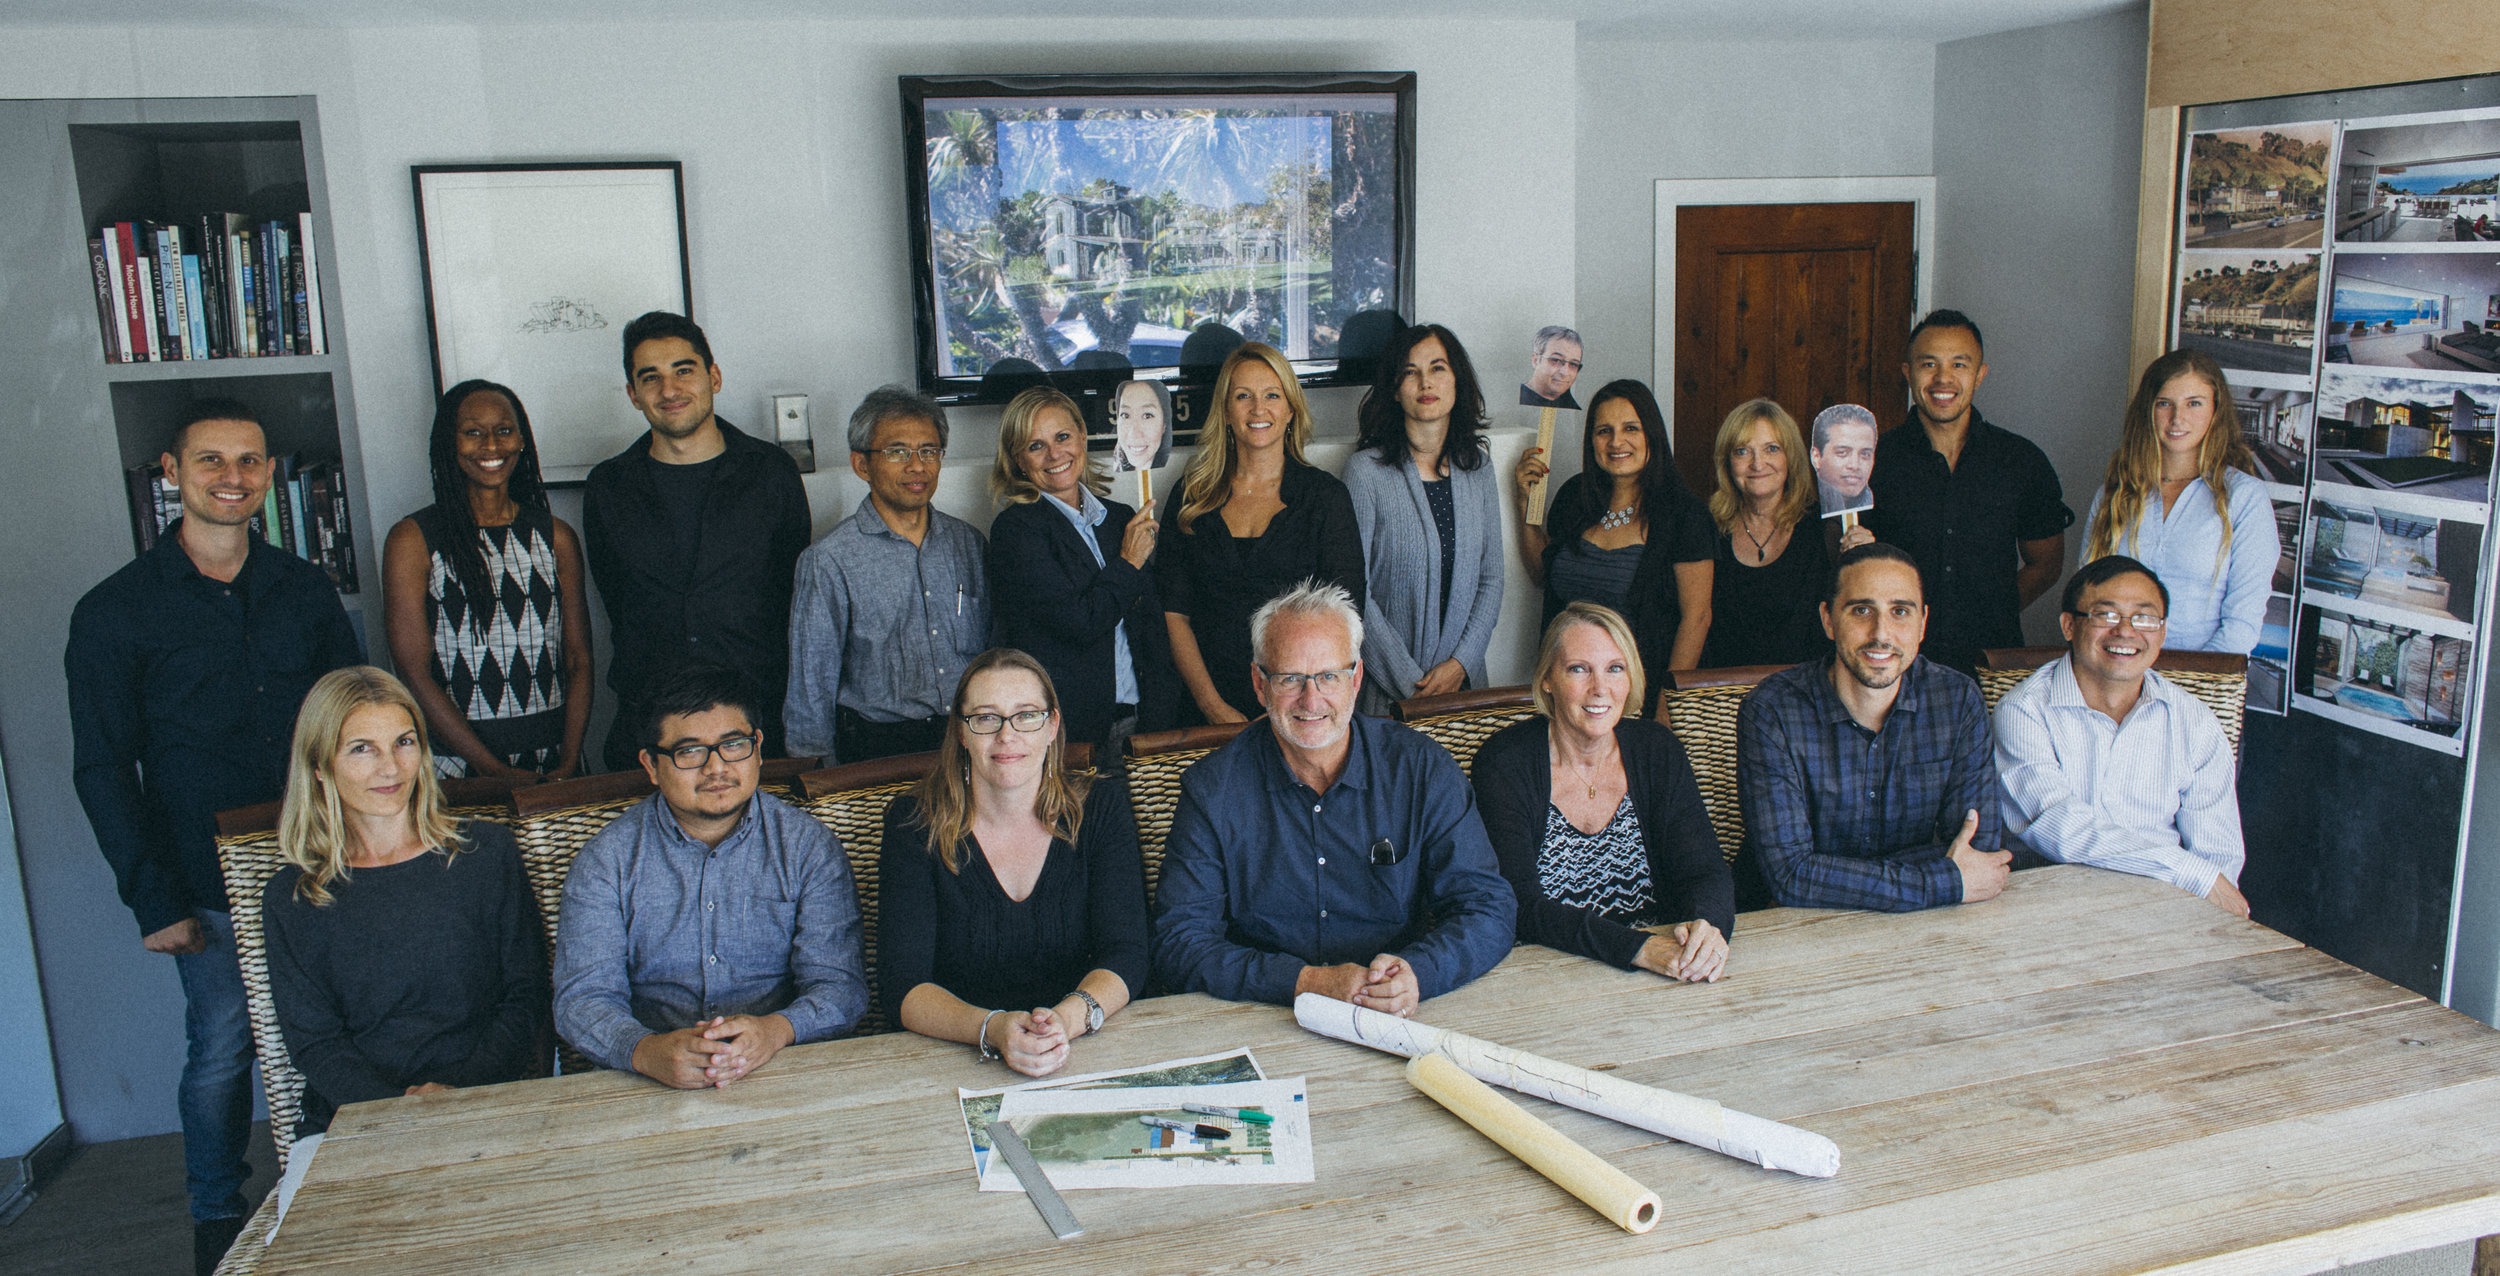 The Burdge & Associates Architects team at their office just off PCH.